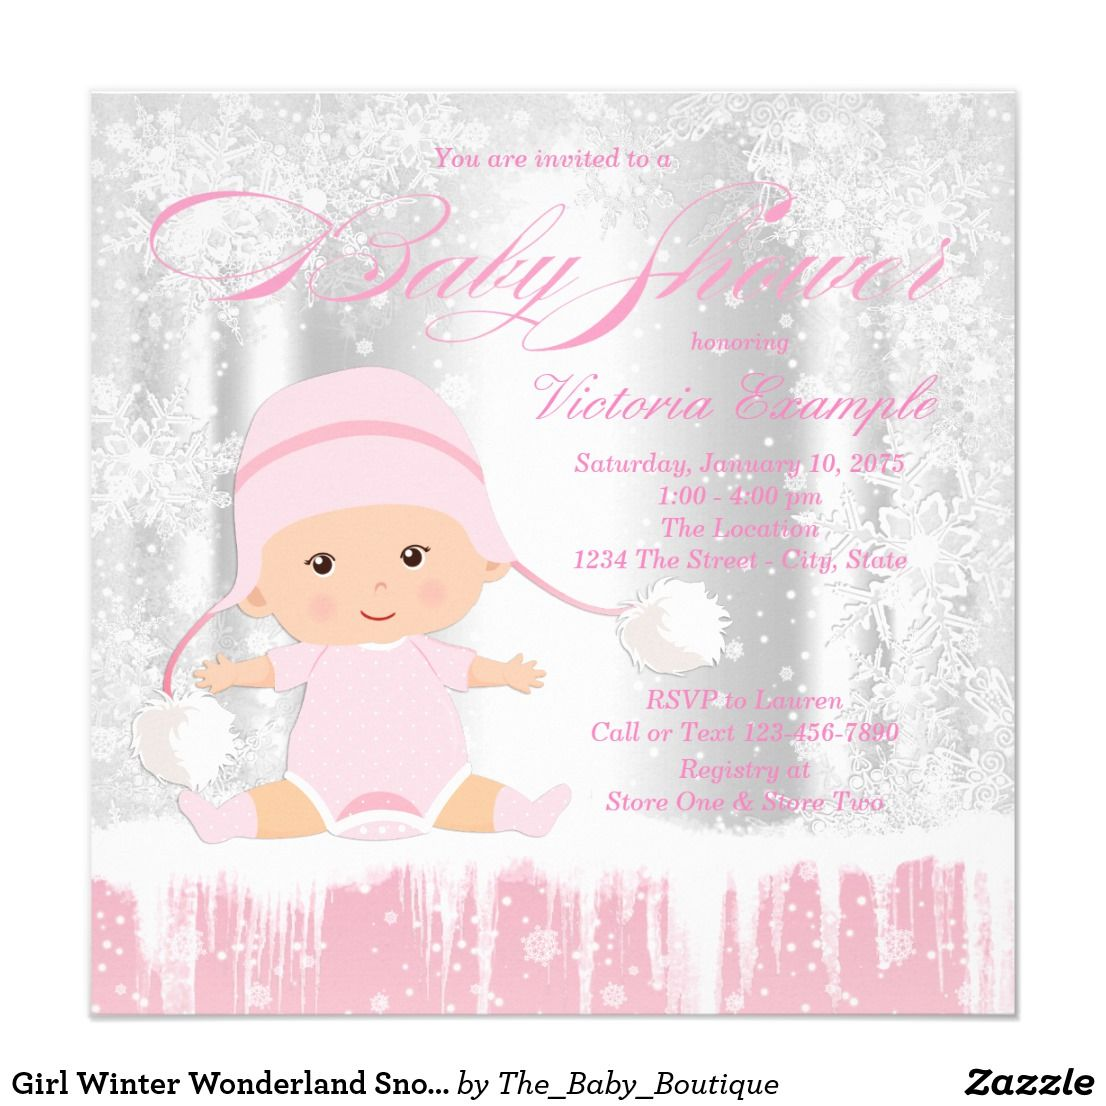 Winter wonderland baby shower invitation with adorable baby girl on ...